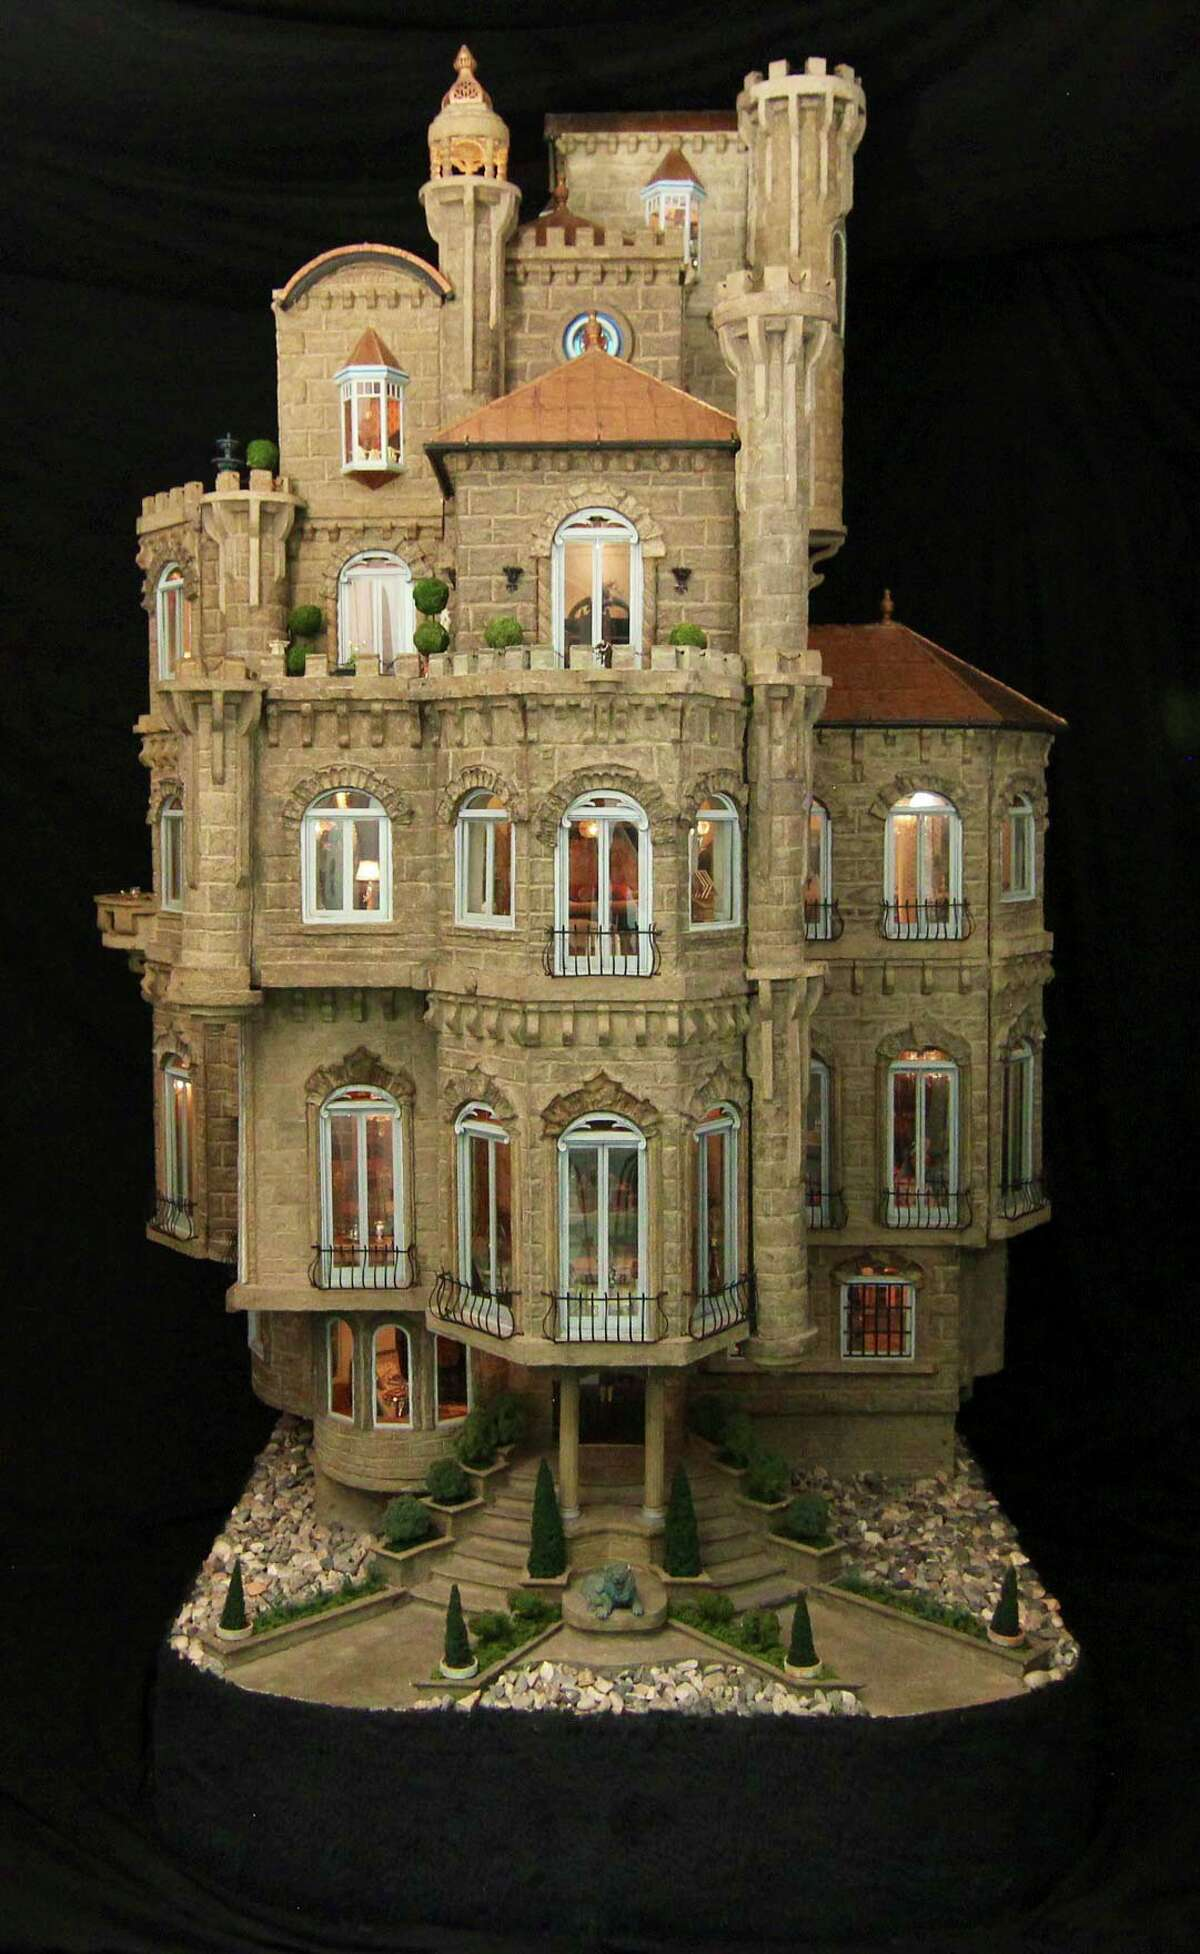 This dollhouse is worth $8.5 million, and has numerous intricate furnishings inside and out.